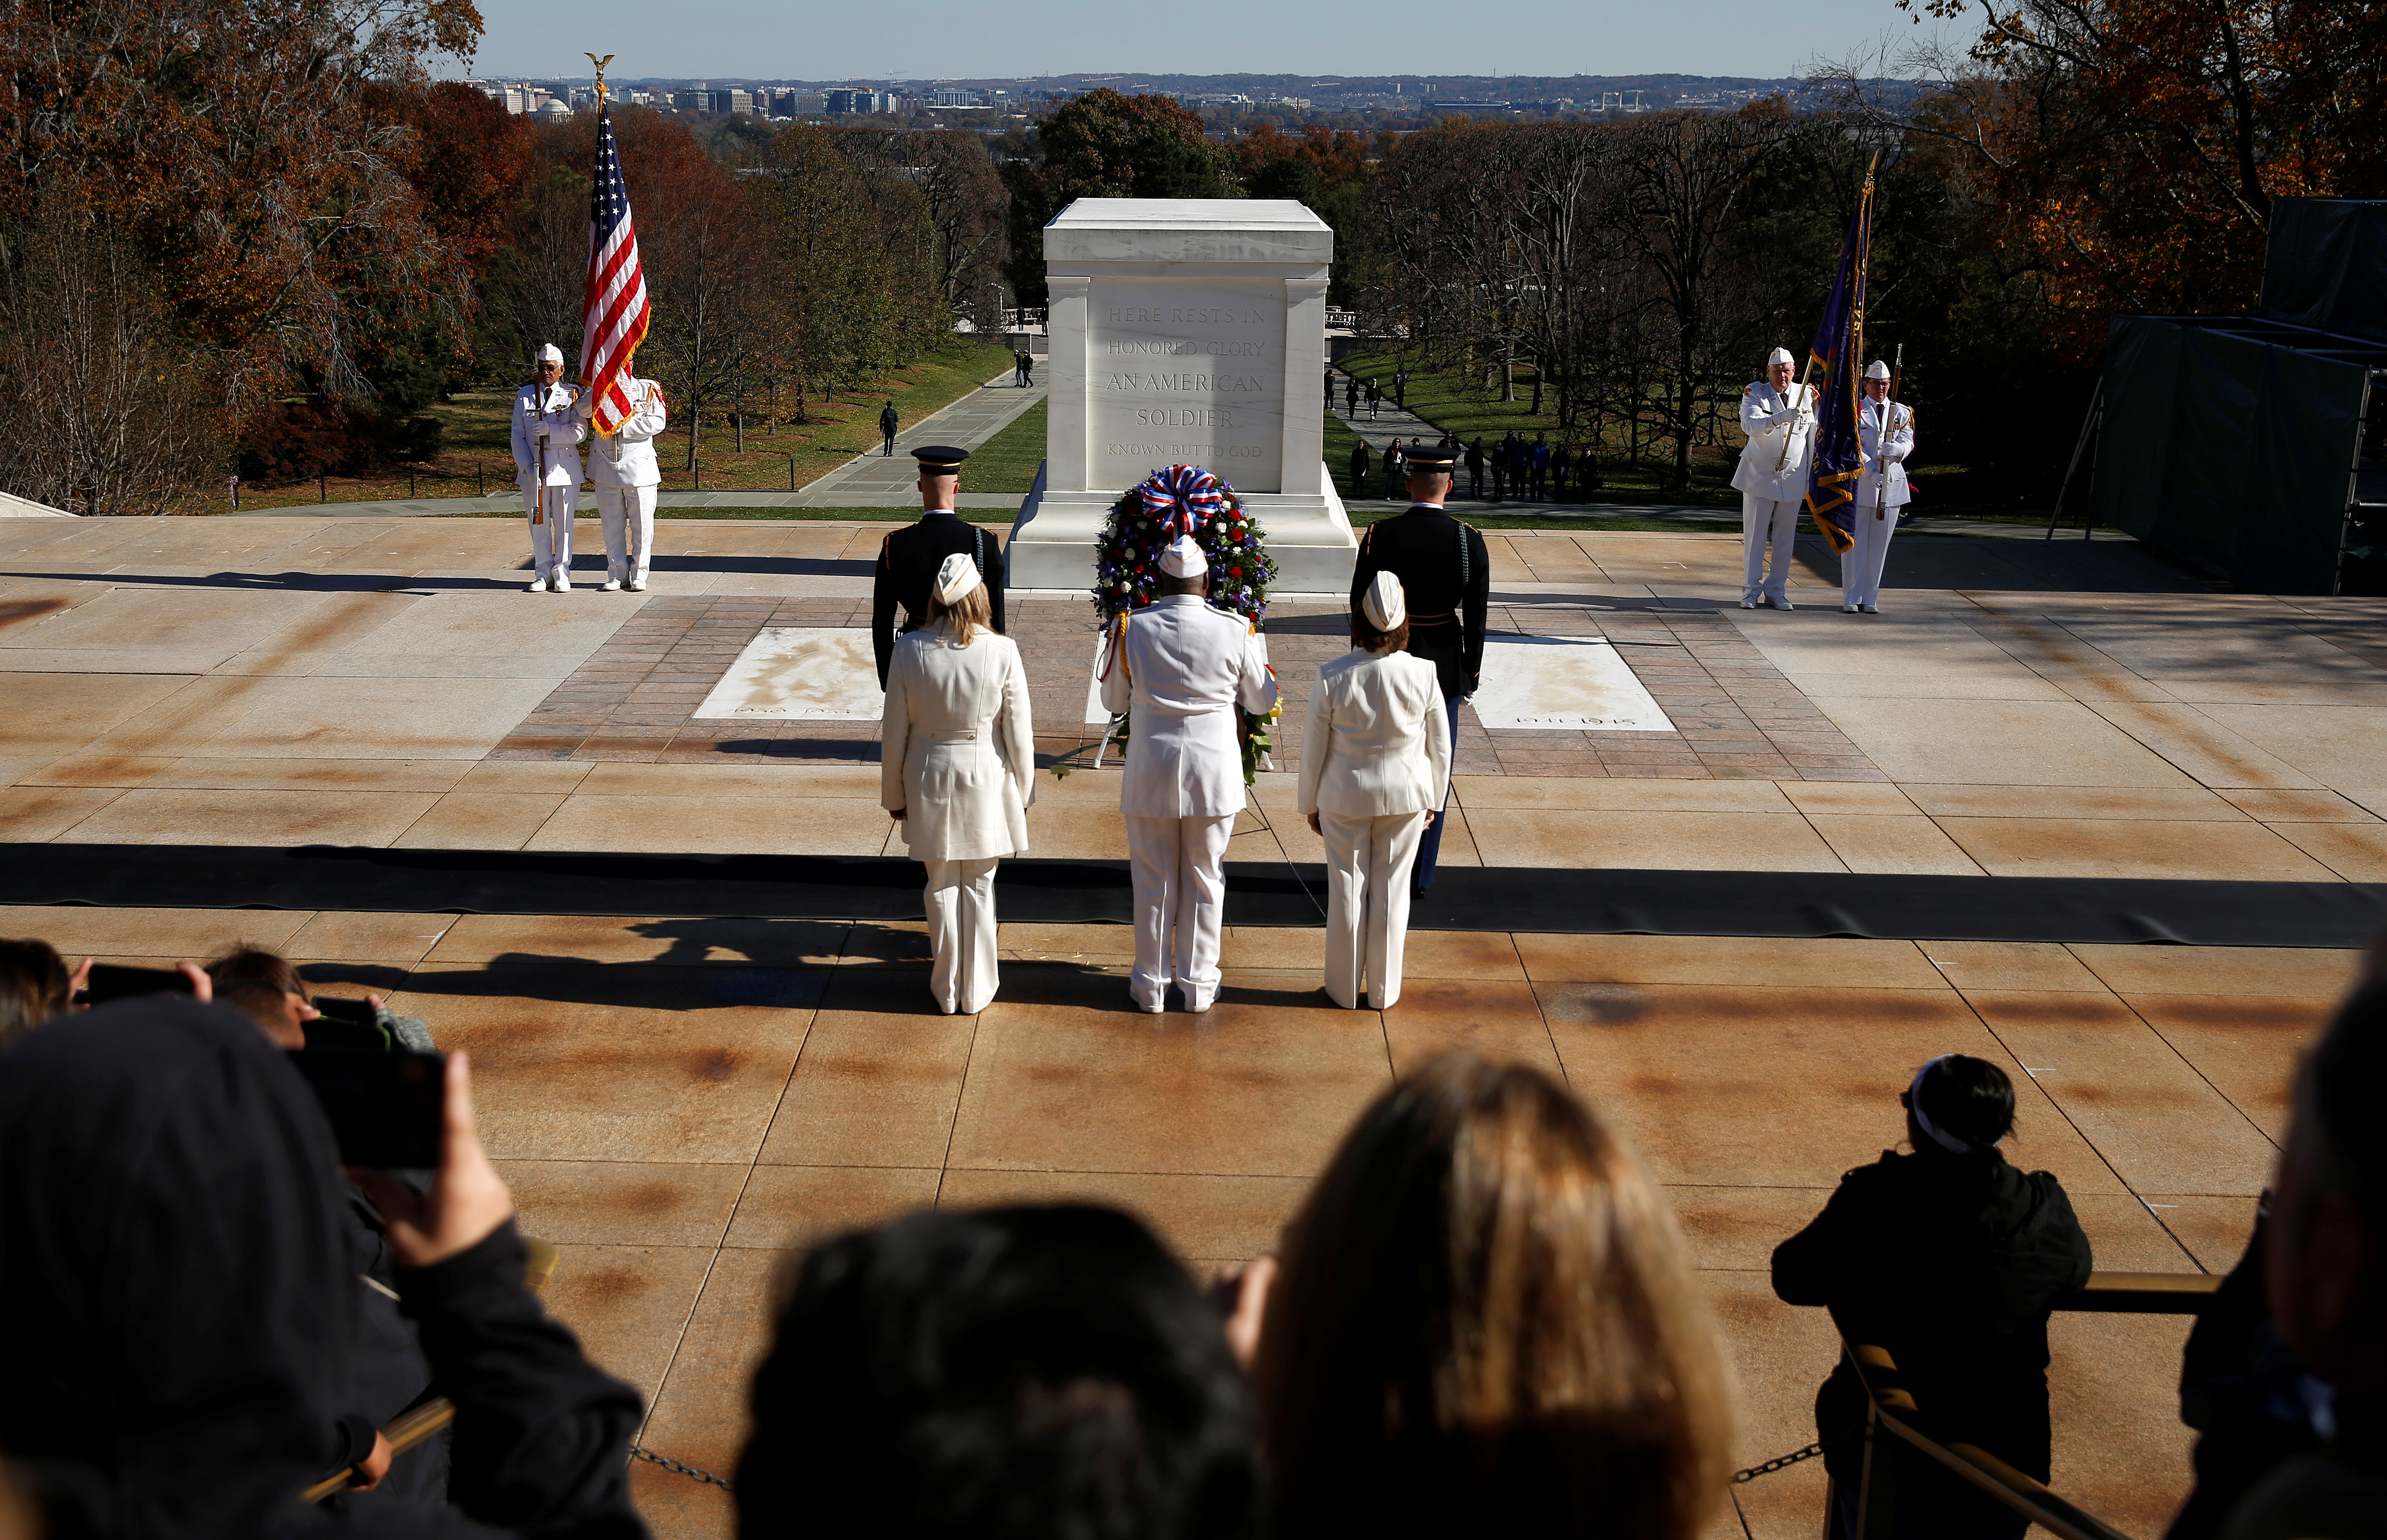 Members of the Veterans of Foreign Wars place a wreath at the Tomb of the Unknown Soldier on Veteran's Day at Arlington National Cemetery in Arlington, Virginia, U.S., November 11, 2018. REUTERS/Joshua Roberts